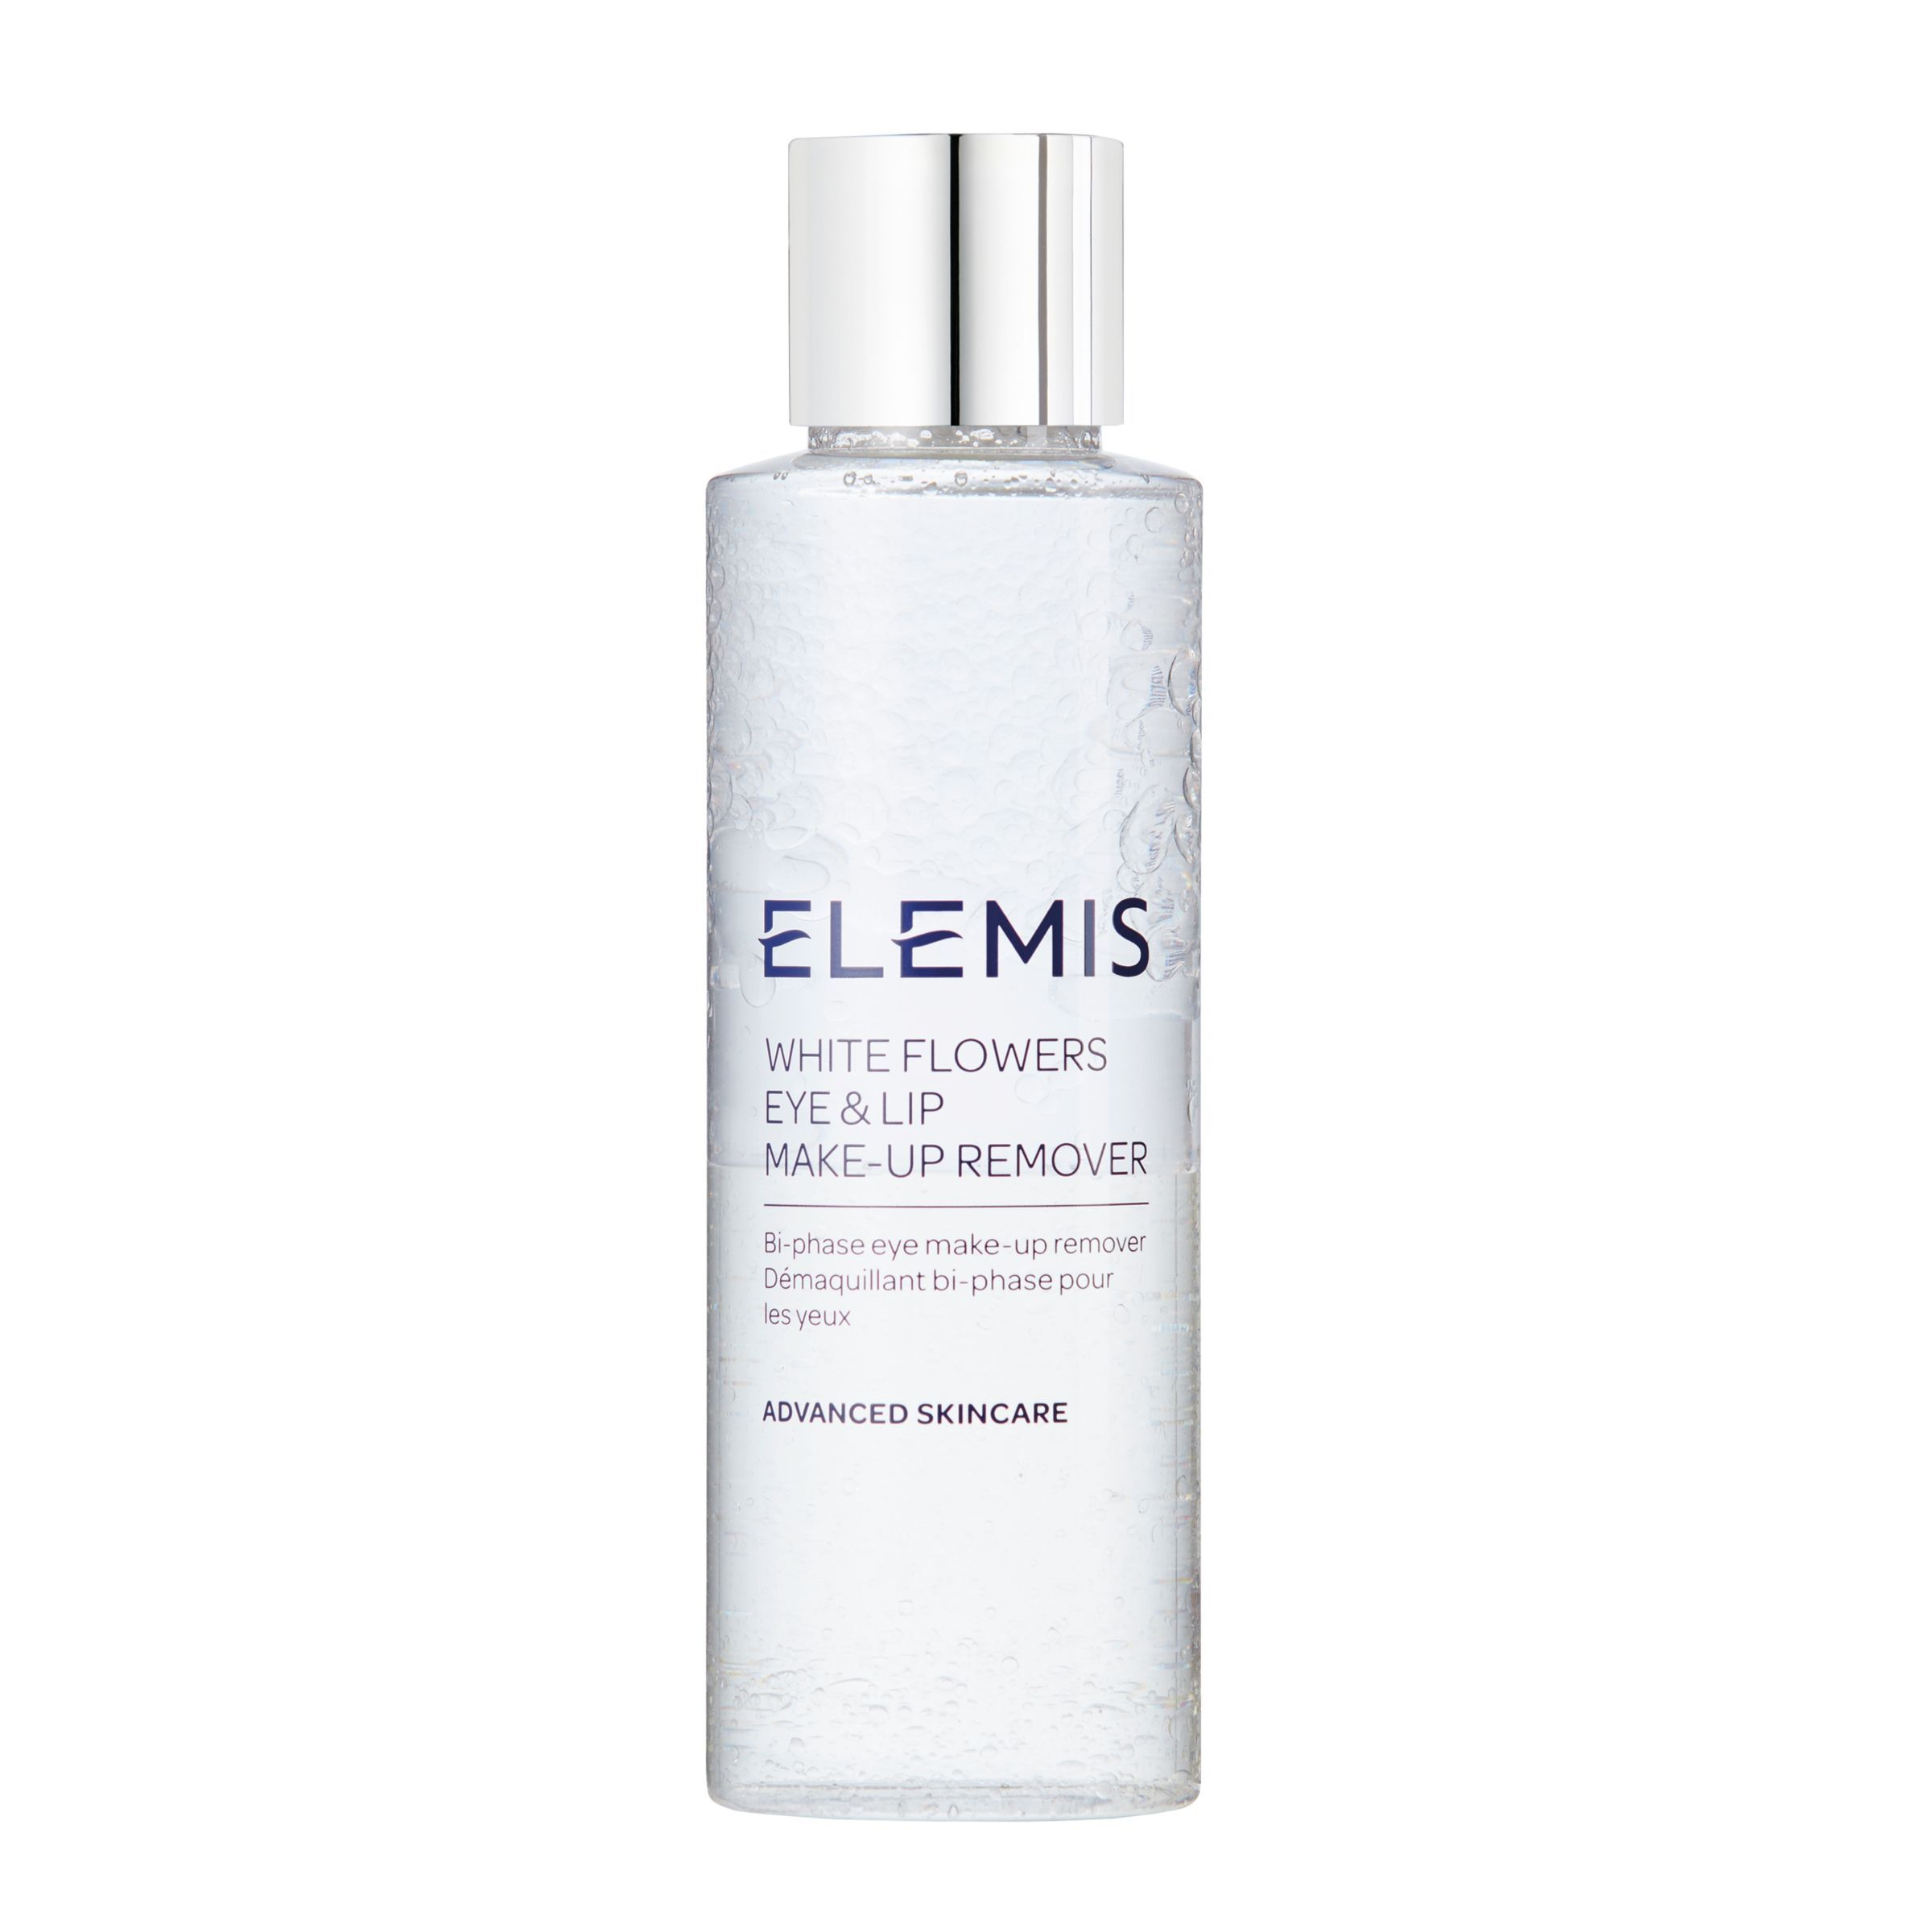 Elemis White Flowers Eye And Lip Makeup Remover, 125ml in